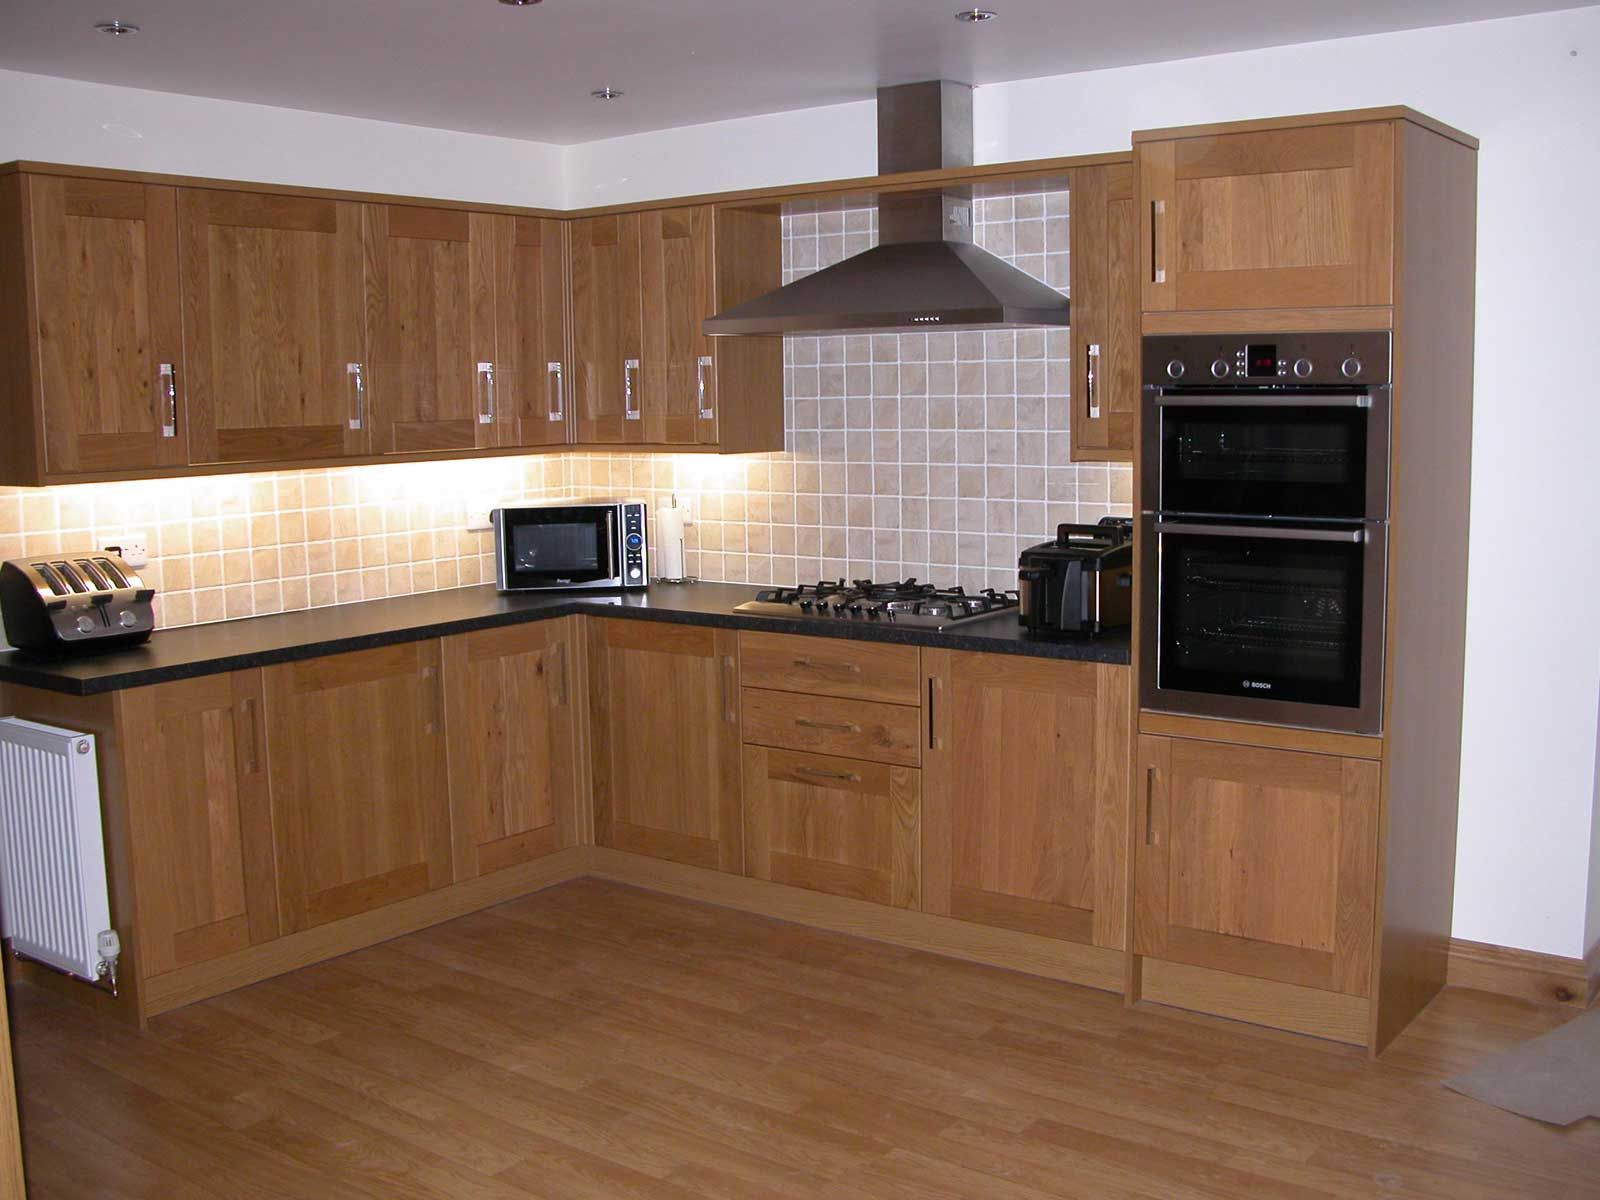 How Much Should Kitchen Cabinets Cost Cost To Replace Kitchen Cabinets From How Much Does It